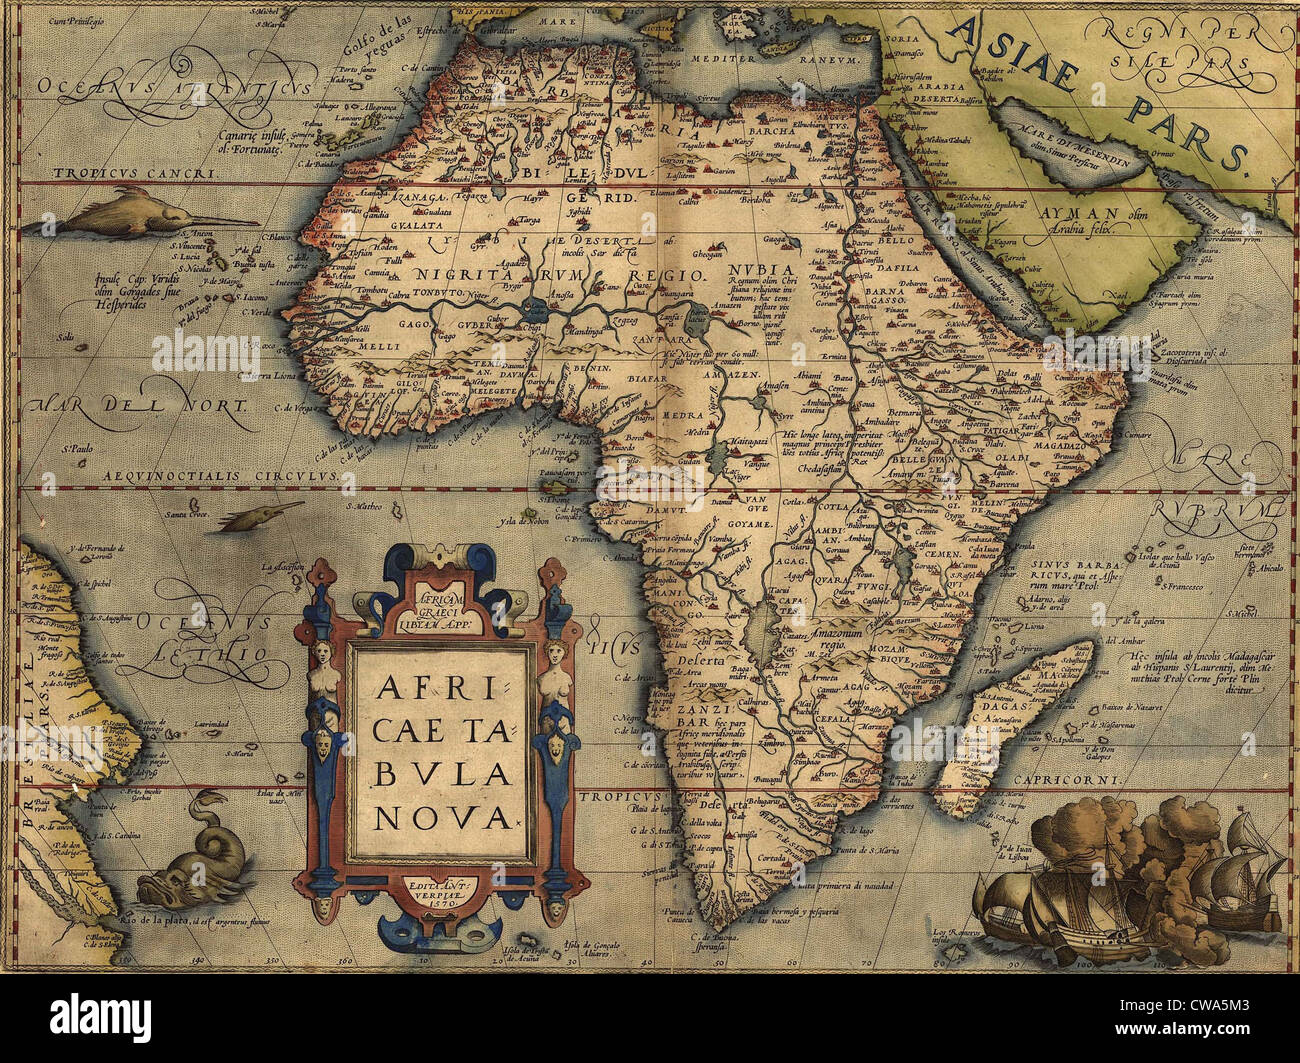 Africa map equator stock photos africa map equator stock images 1570 map of africa by abraham ortelius map shows place namessettlementsrivers gumiabroncs Images